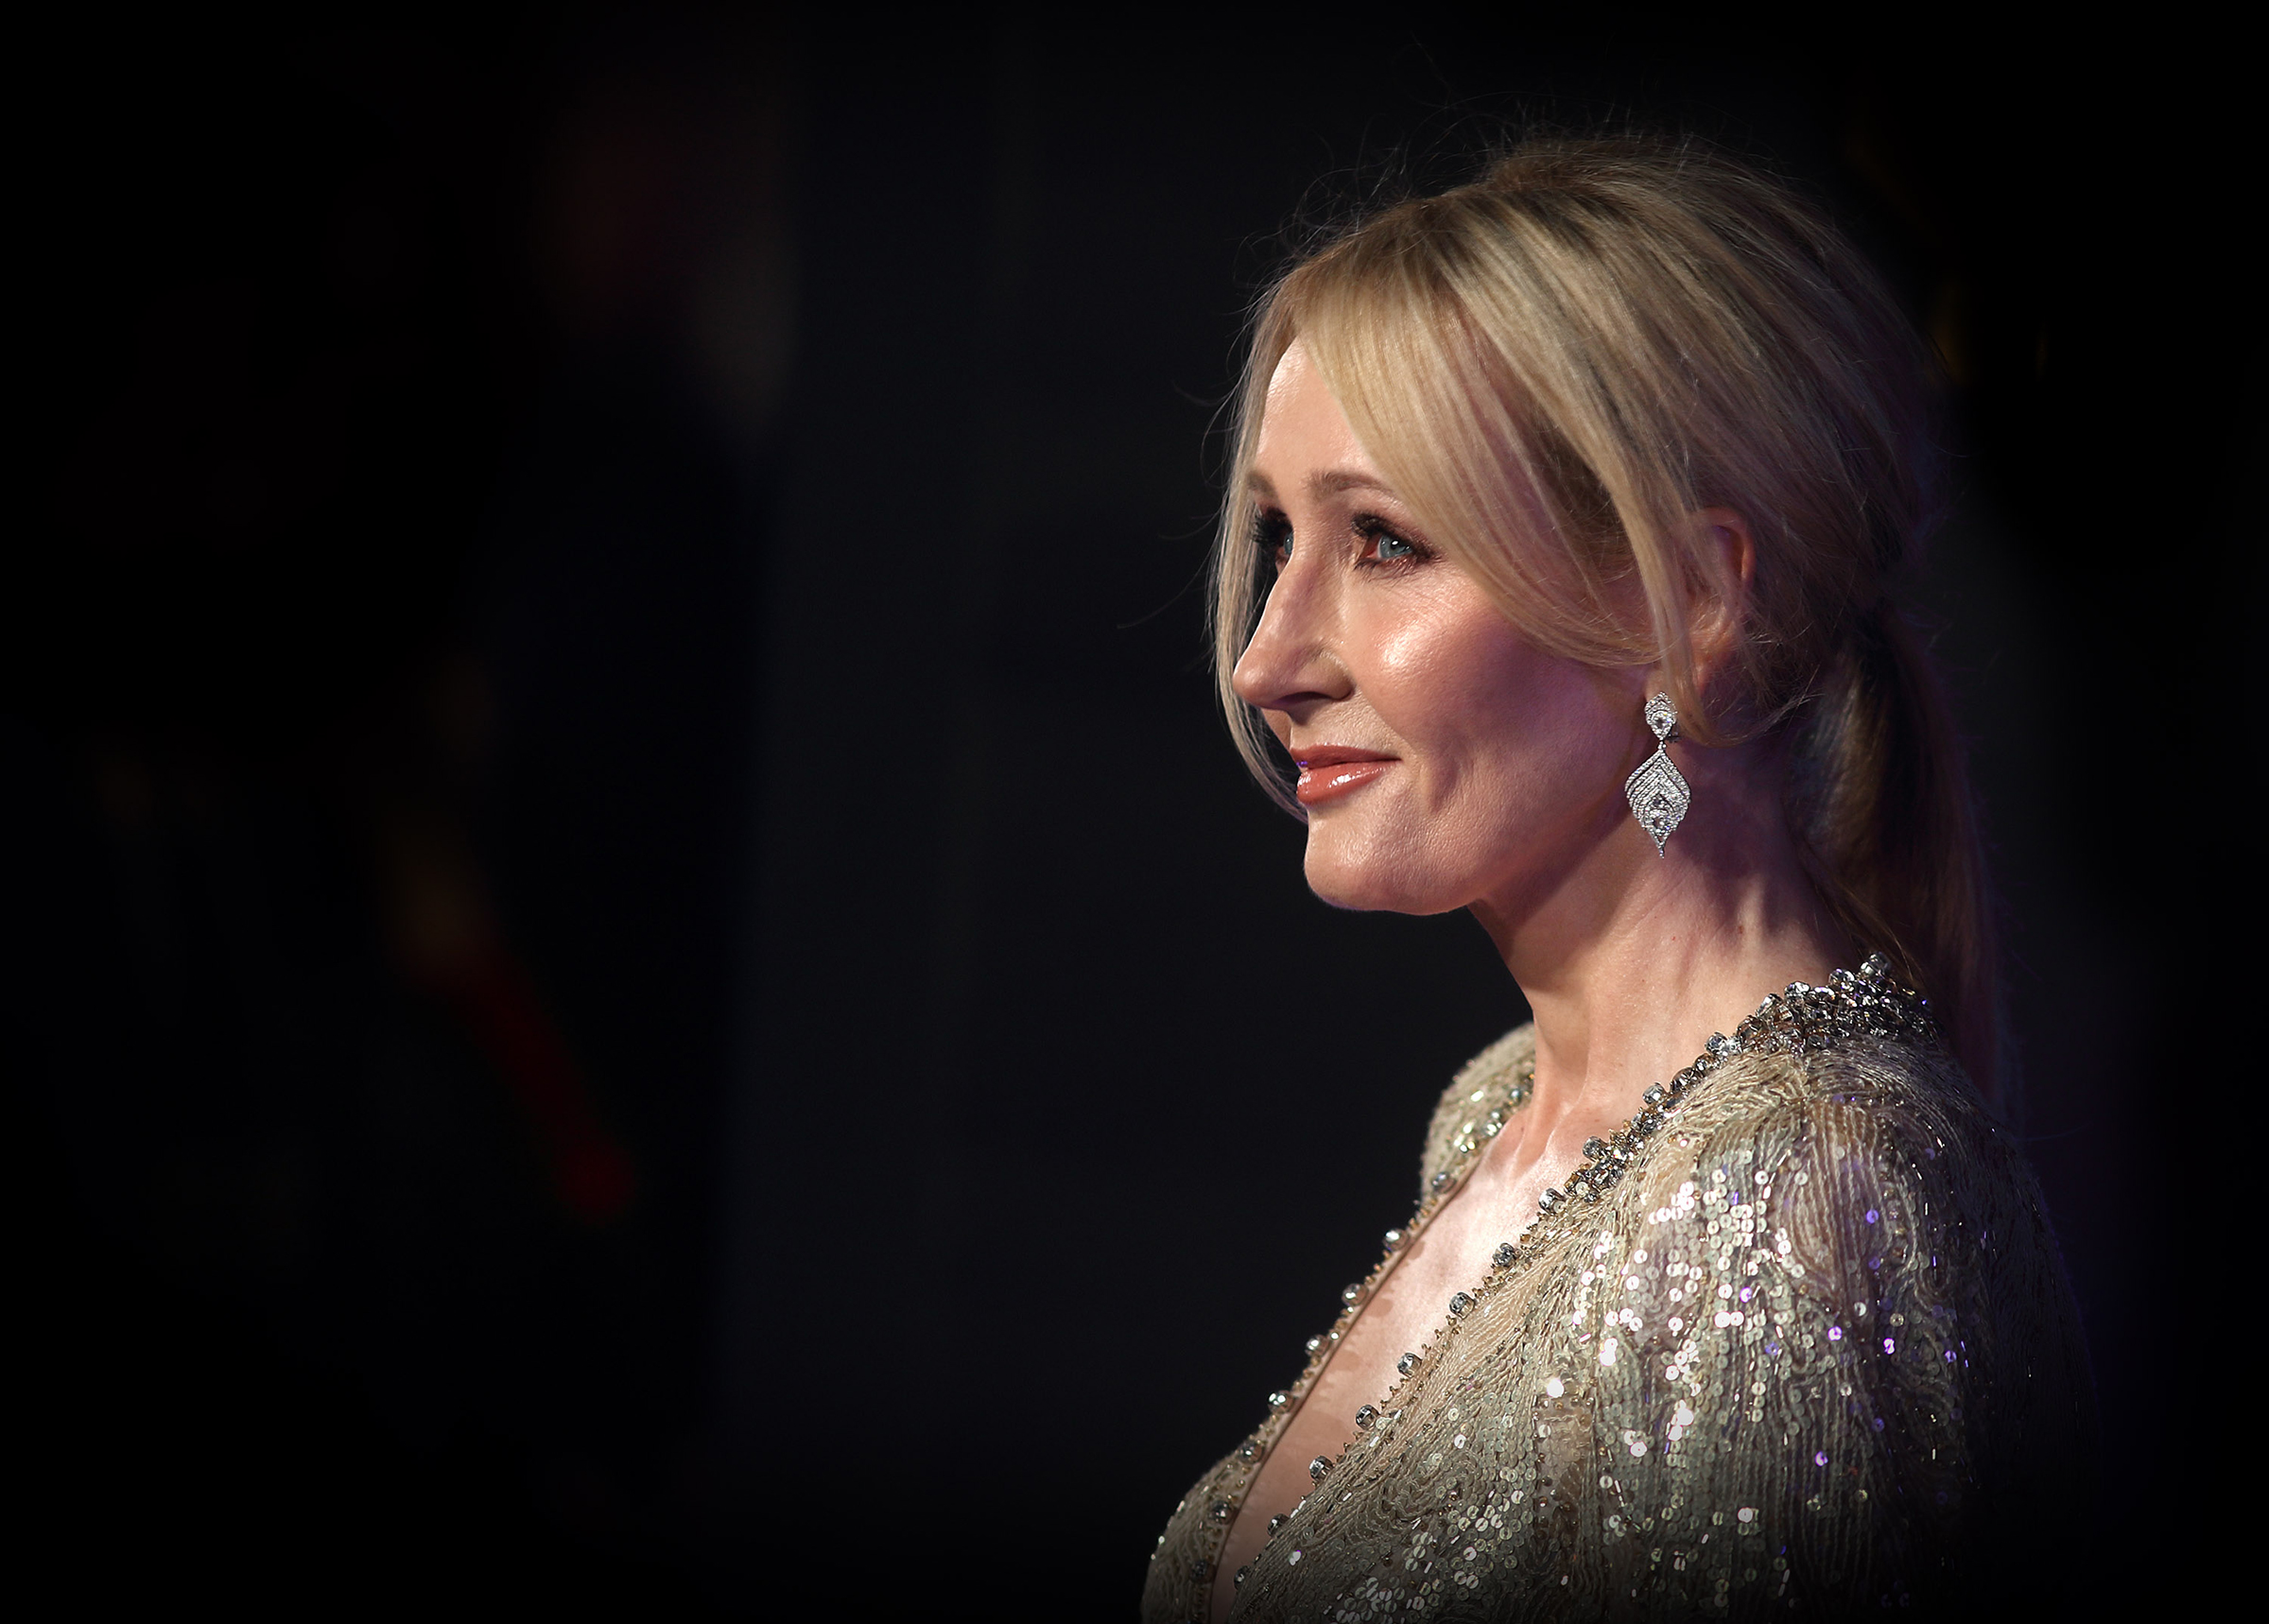 J.K. Rowling attends the European premiere of  Fantastic Beasts And Where To Find Them  at Odeon Leicester Square in London, England on Nov. 15, 2017.